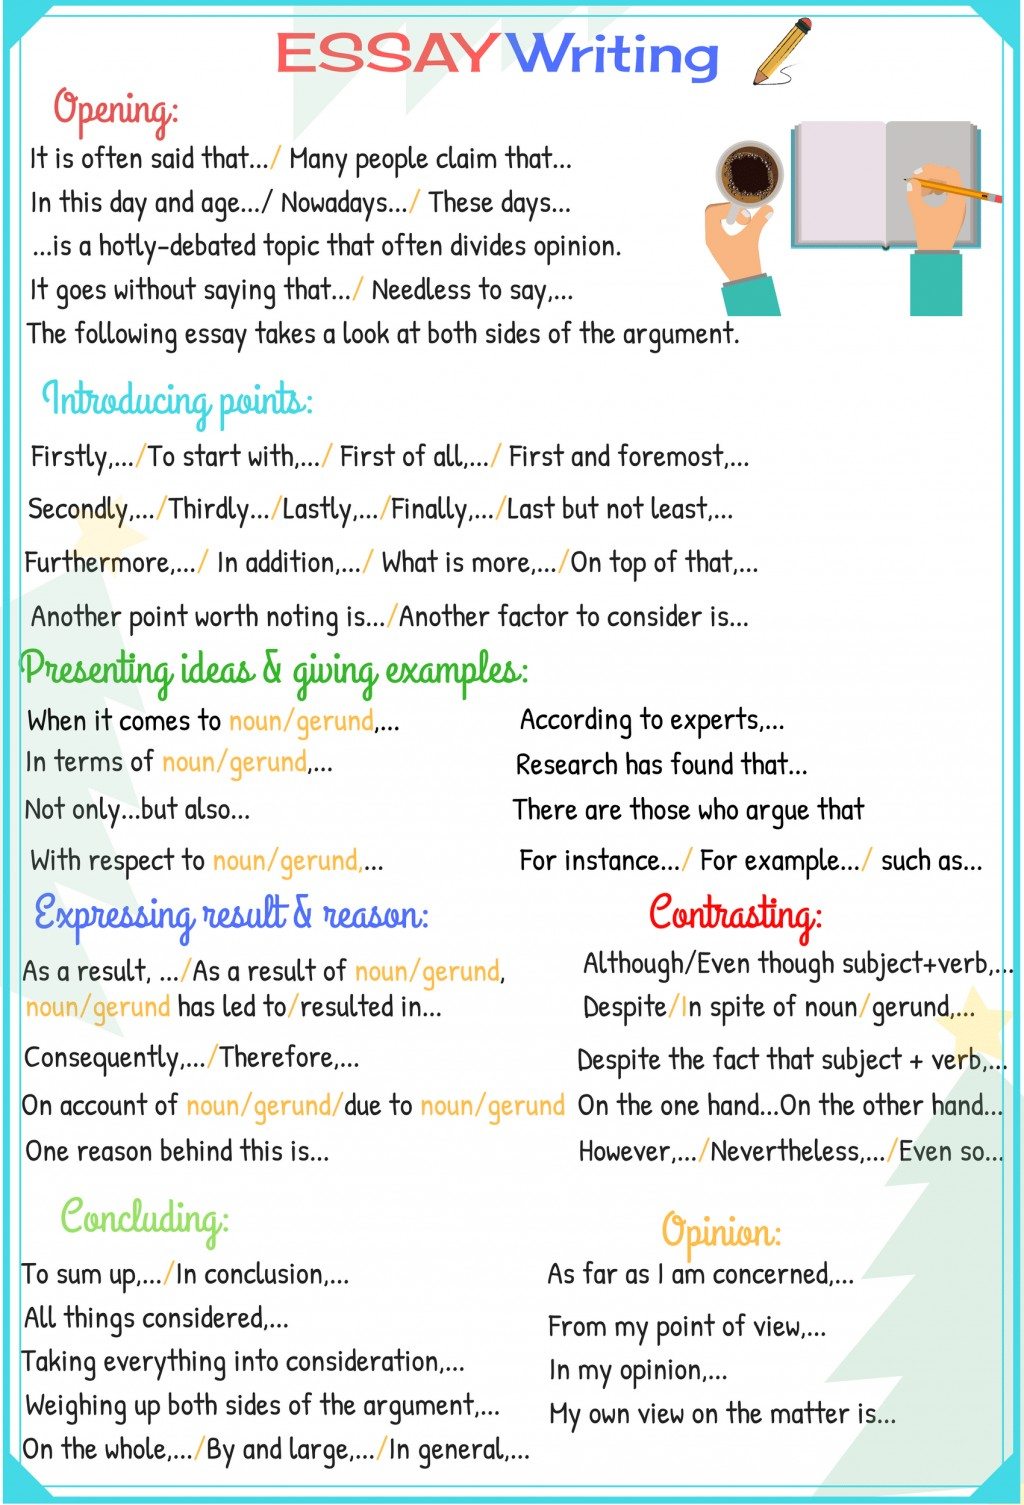 003 Tips On Writing An Essay Striking Introduction About Yourself Essays Faster Large